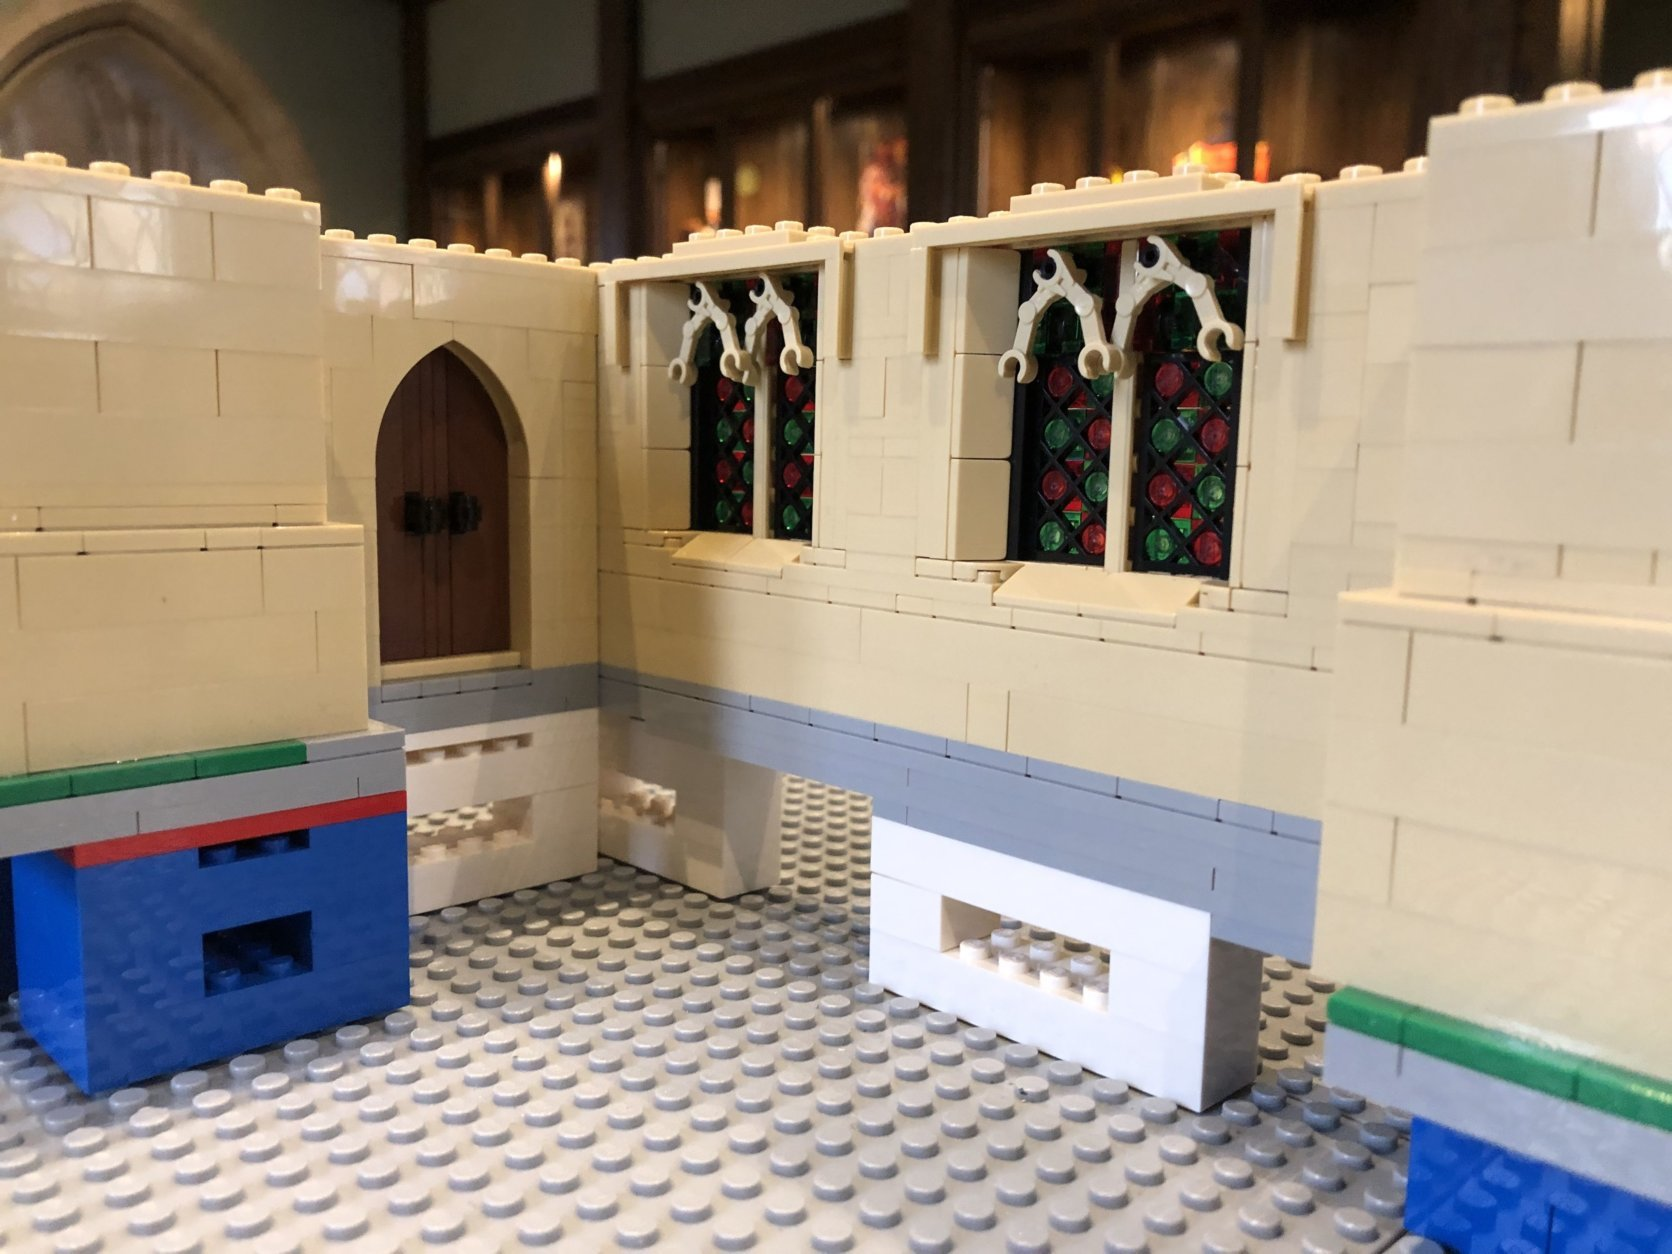 The idea for the LEGO cathedral came from a similar project that took place at the Durham Cathedral a couple years ago. (WTOP/Mike Murillo)